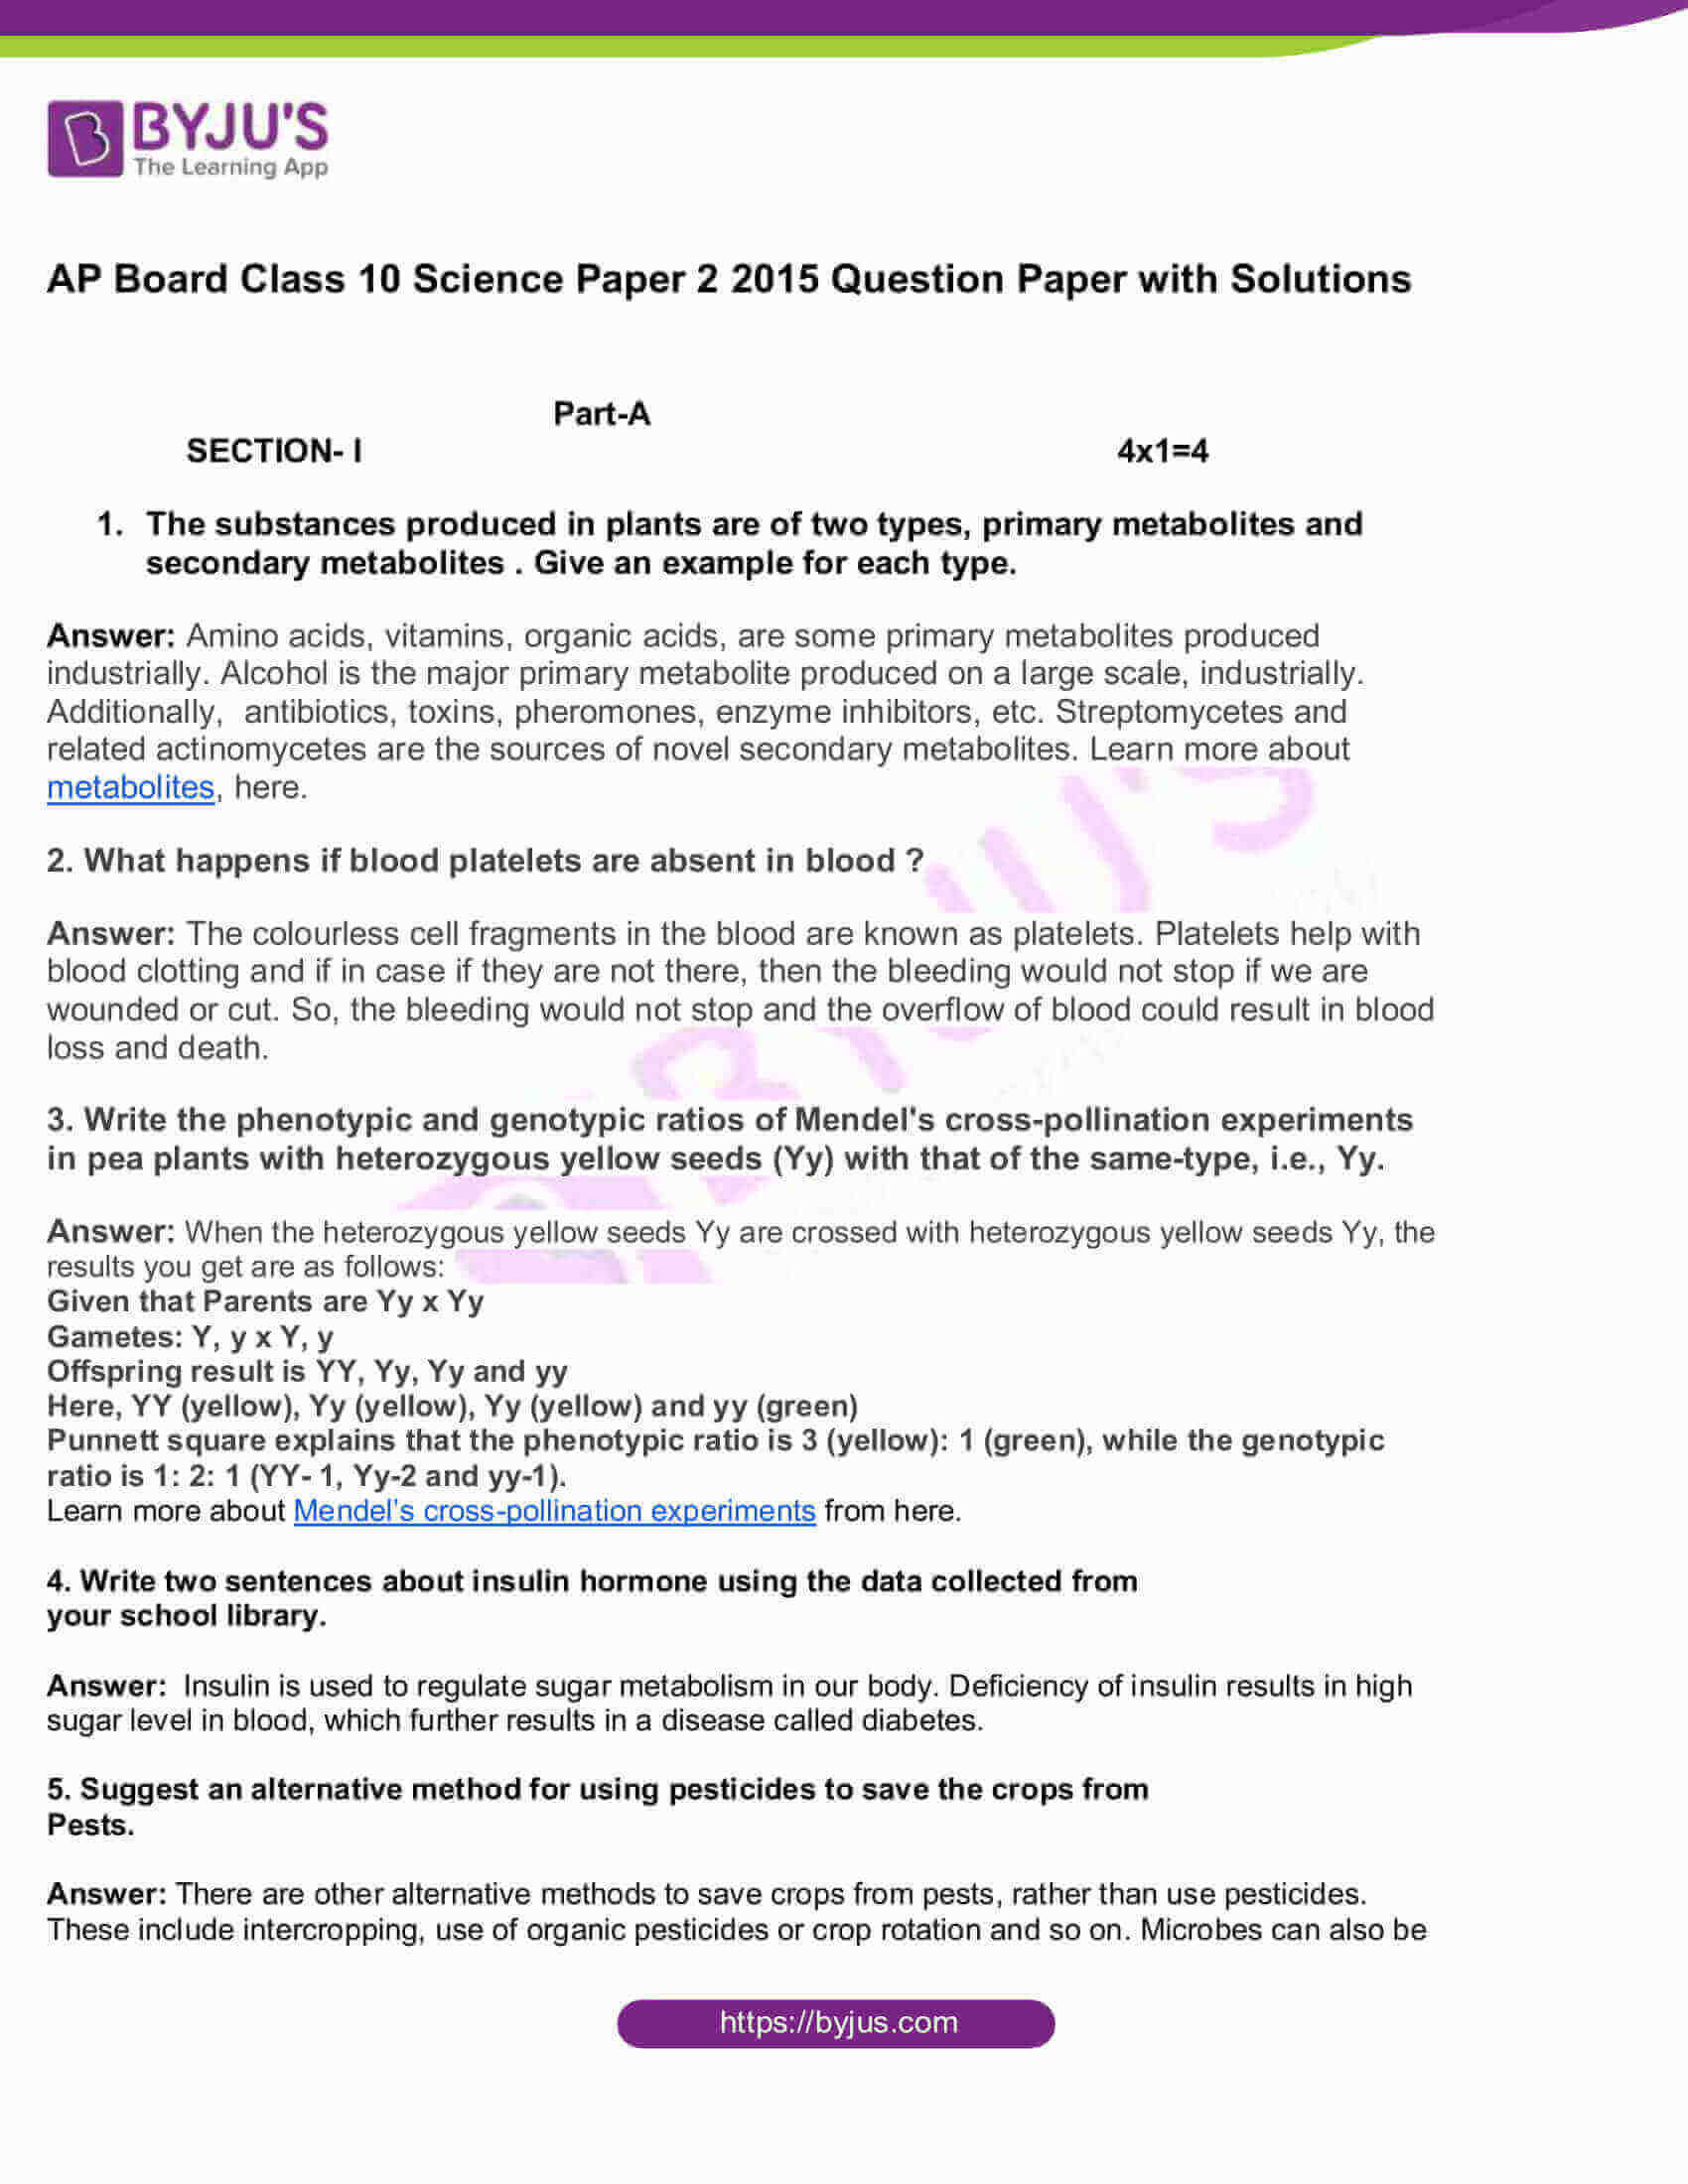 AP Board Class 10 Science Paper 2 2015 Question Paper with Solutions 1